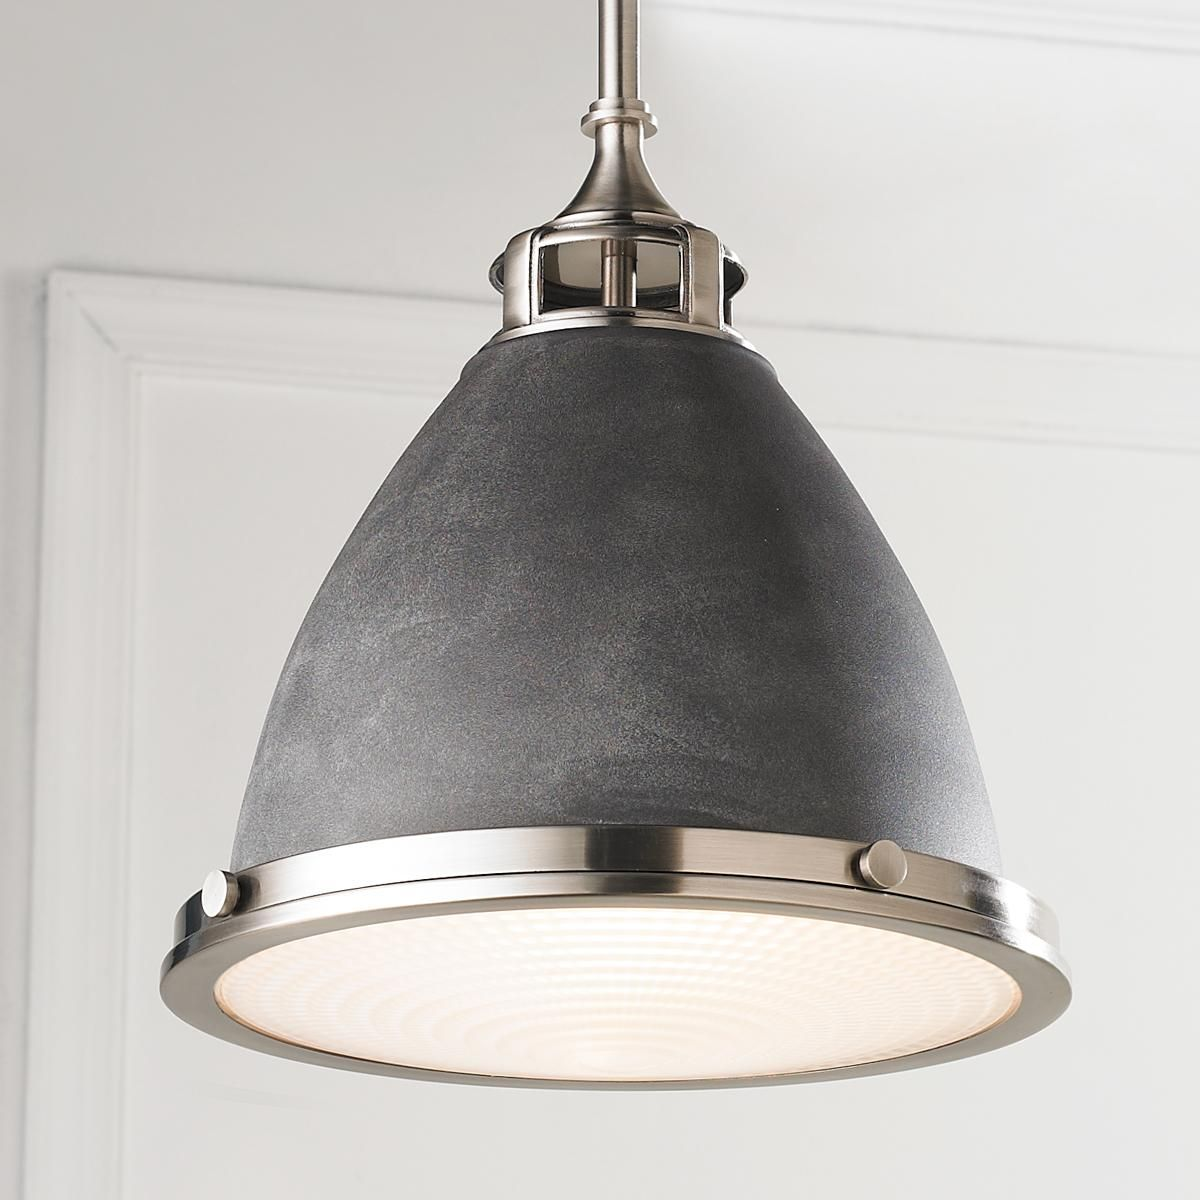 Brighten Up Any Room In Industrial Style With The Schoolhouse Cone Pendant From Threshold 1 Ceiling Lights Ceiling Pendant Lights Energy Efficient Light Bulbs